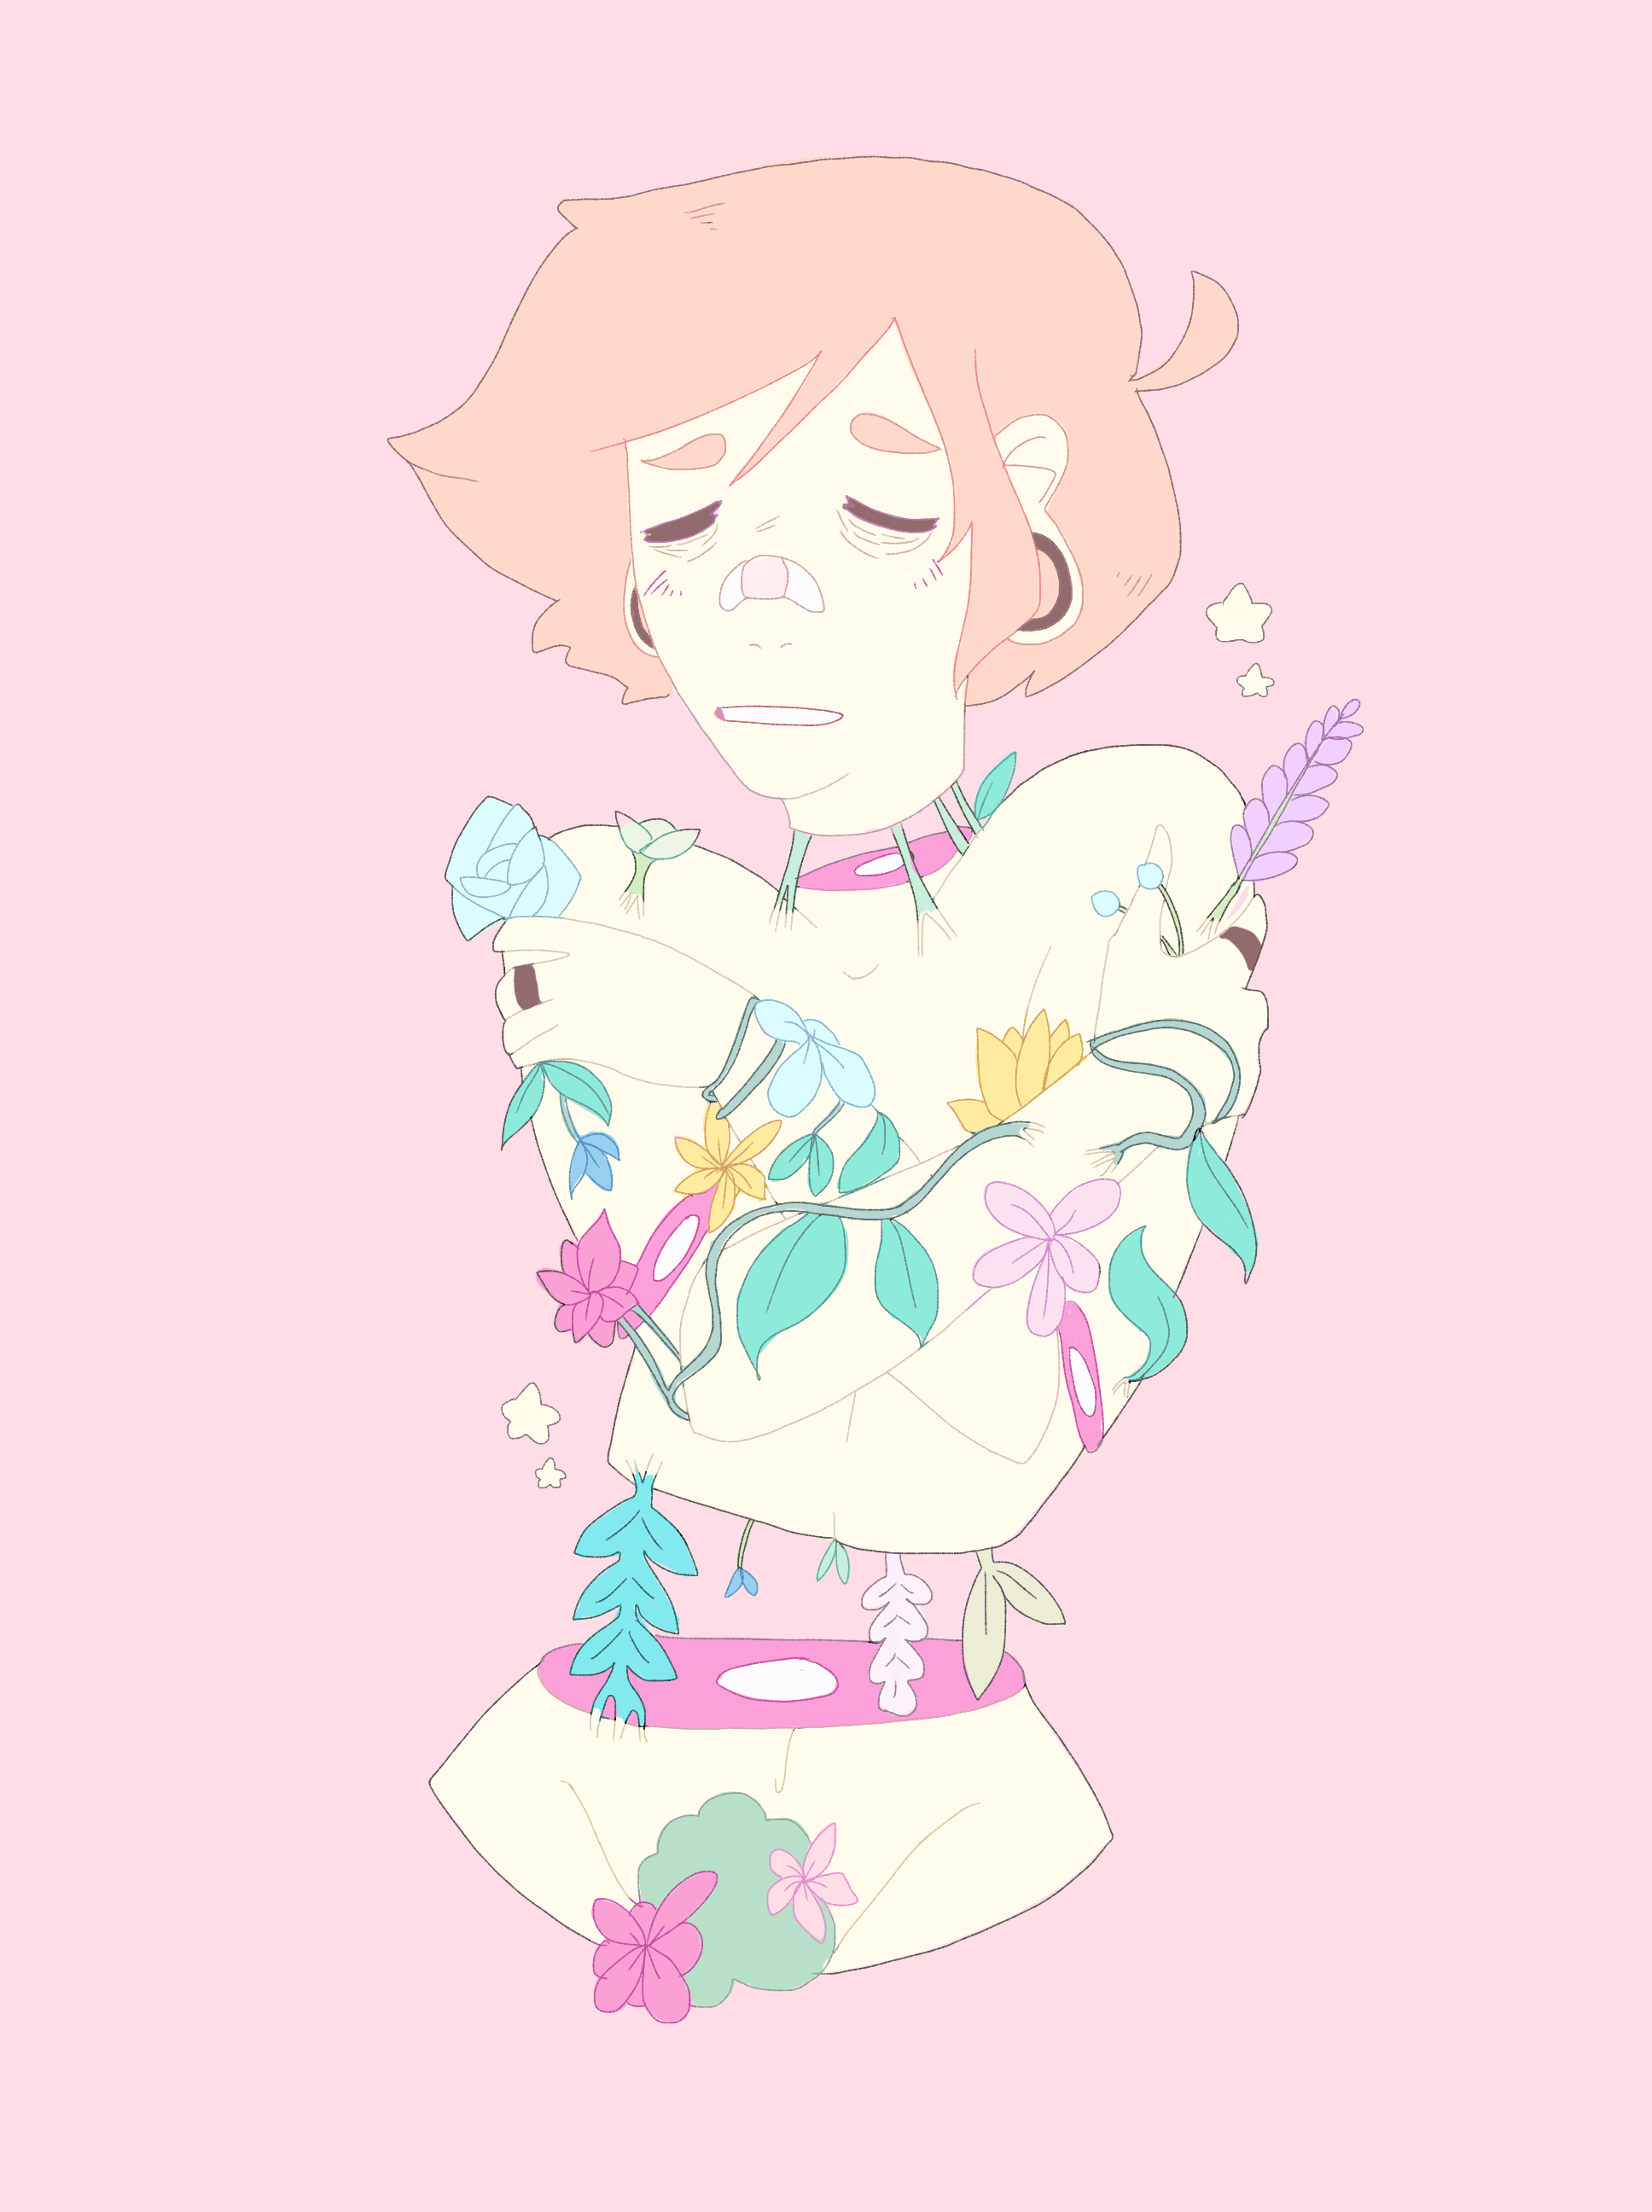 Flowers Grow On My Bones Pastel Art Candy Gore Cute Art I'm gonna try experimenting by actually drawing some candy gore later o_o pray for my soul xd. pinterest